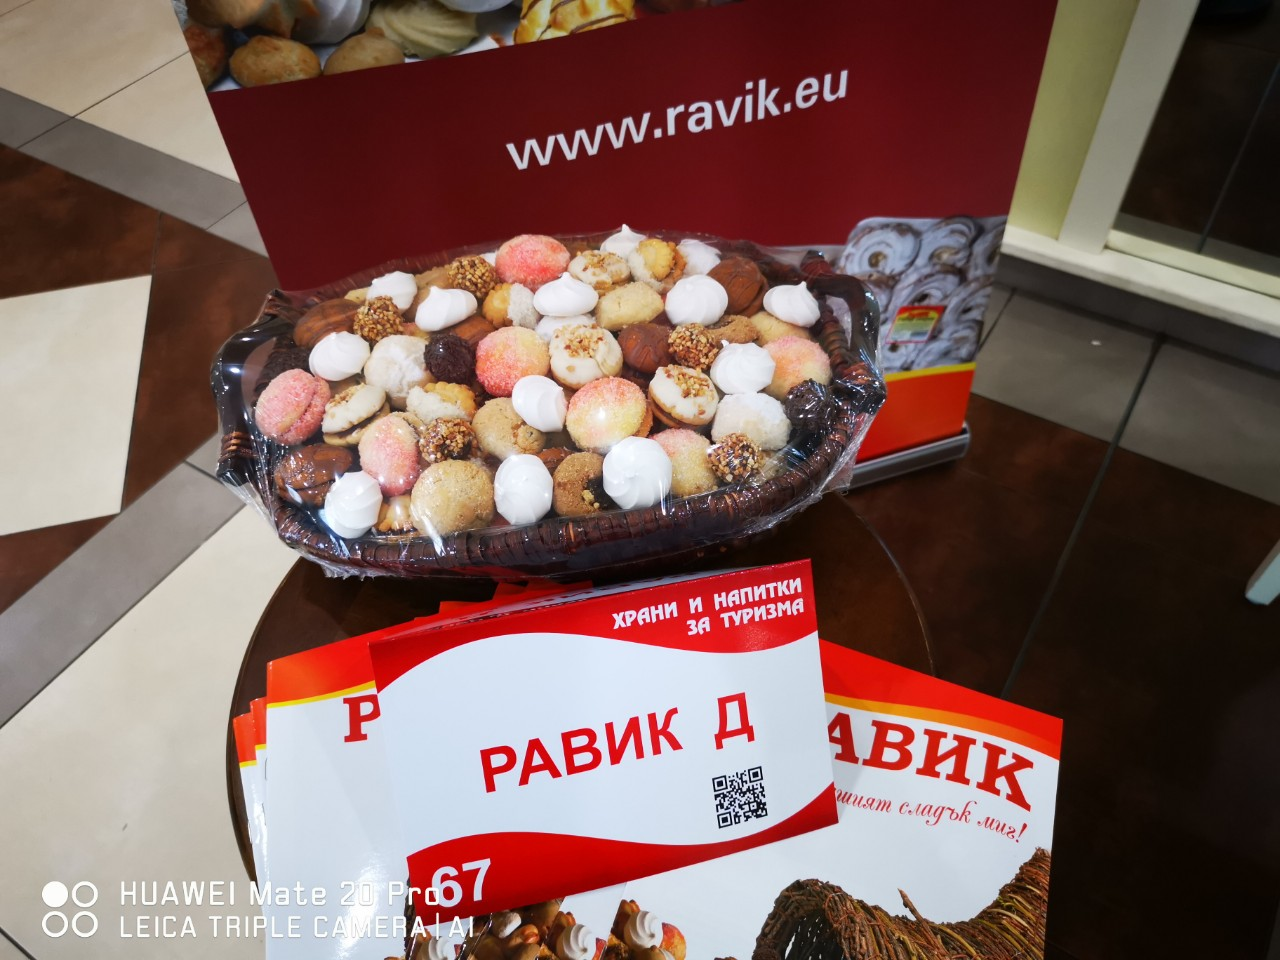 Food and drink for tourism